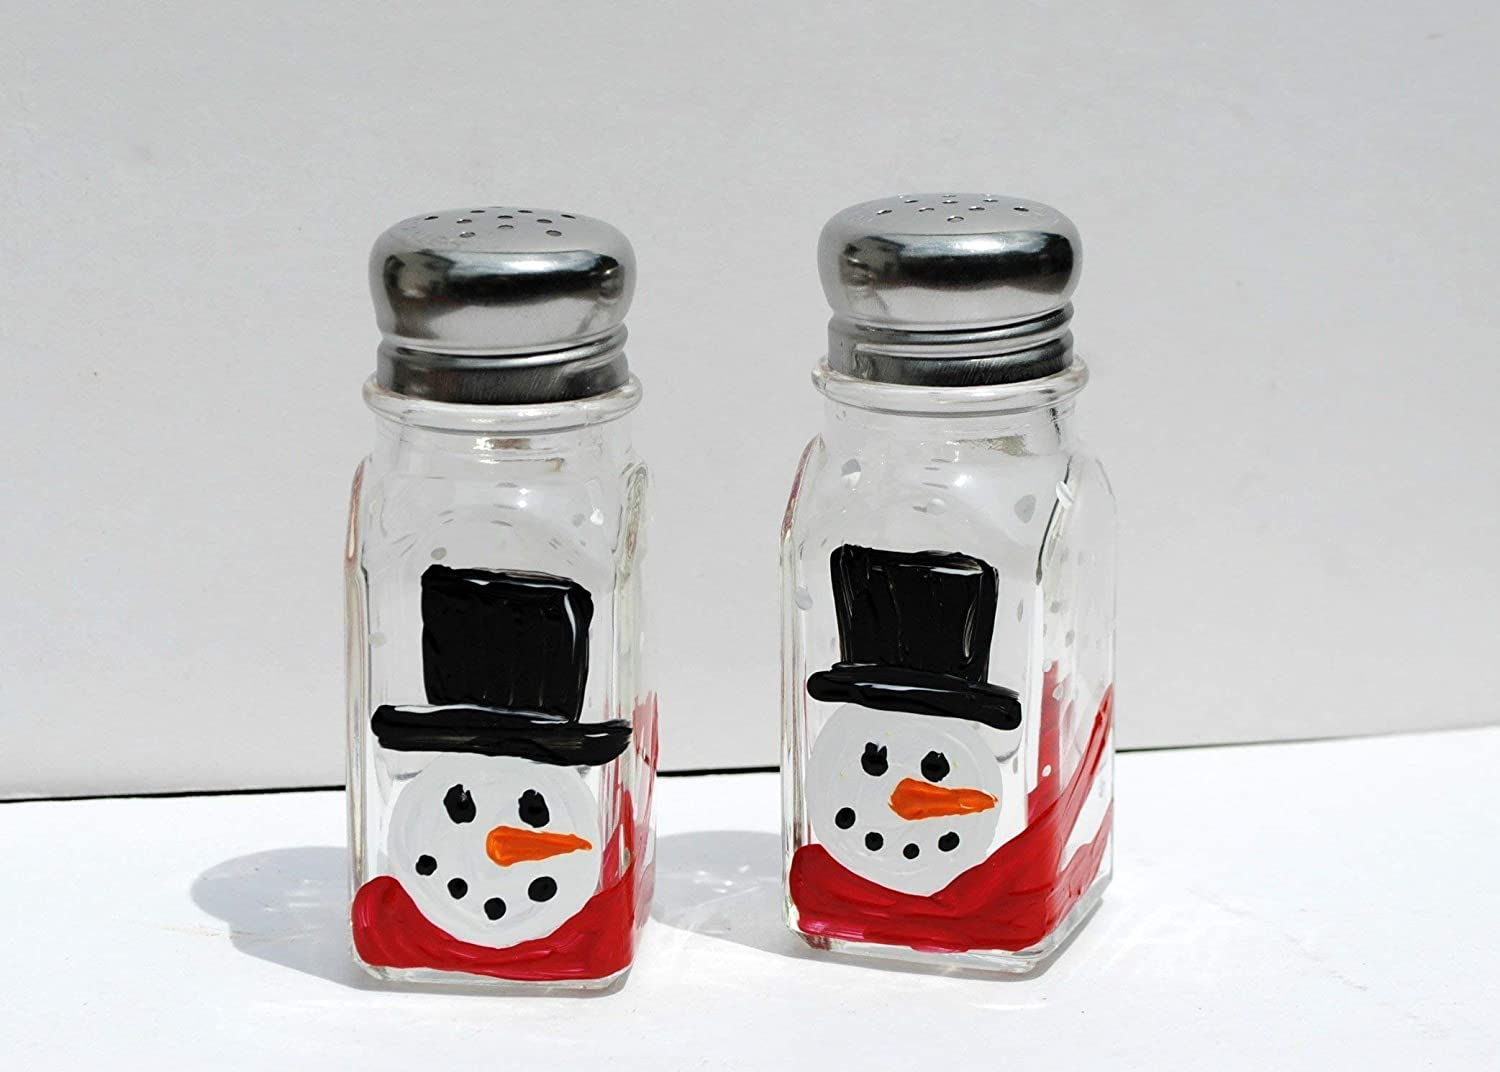 Top Hat Snowman Hand Painted Christmas Salt & Pepper Shakers Set, Holiday Kitchen Décor Holiday Kitchen Décor